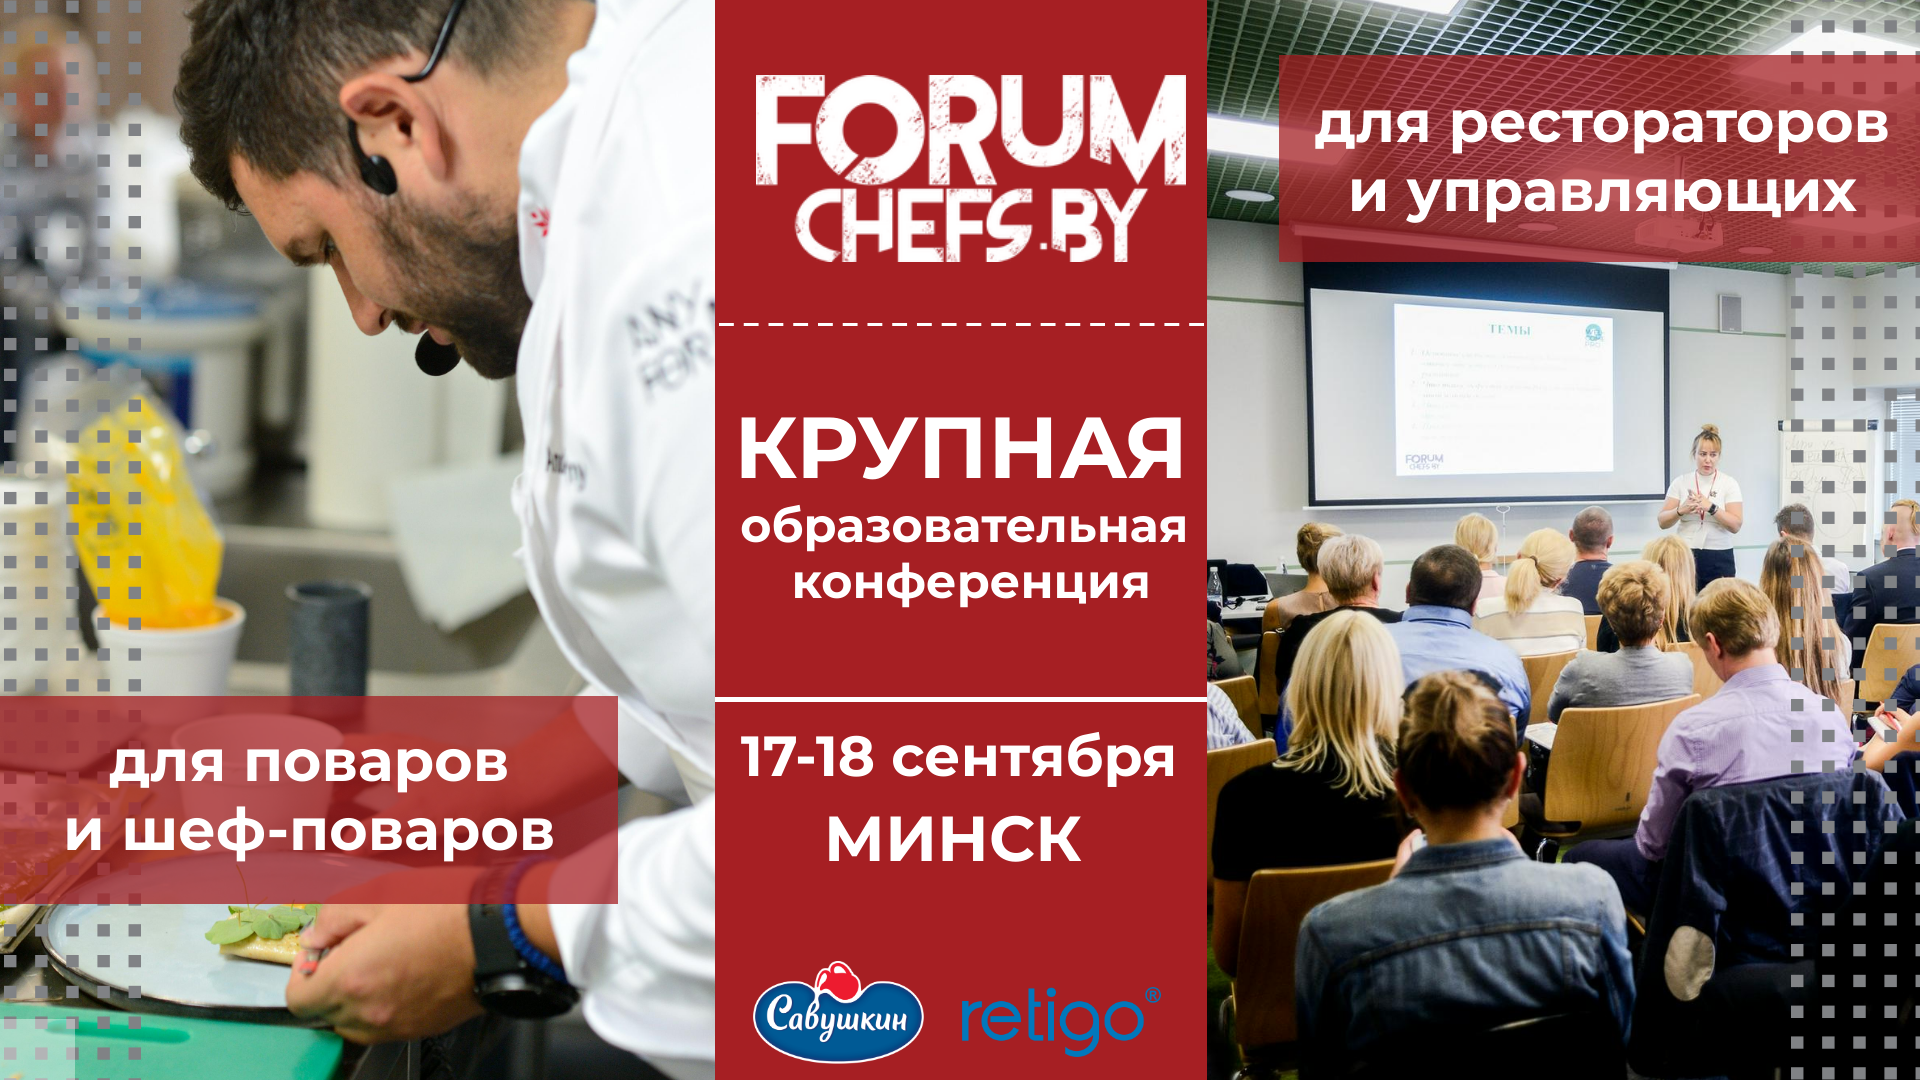 FORUM.CHEFS.BY